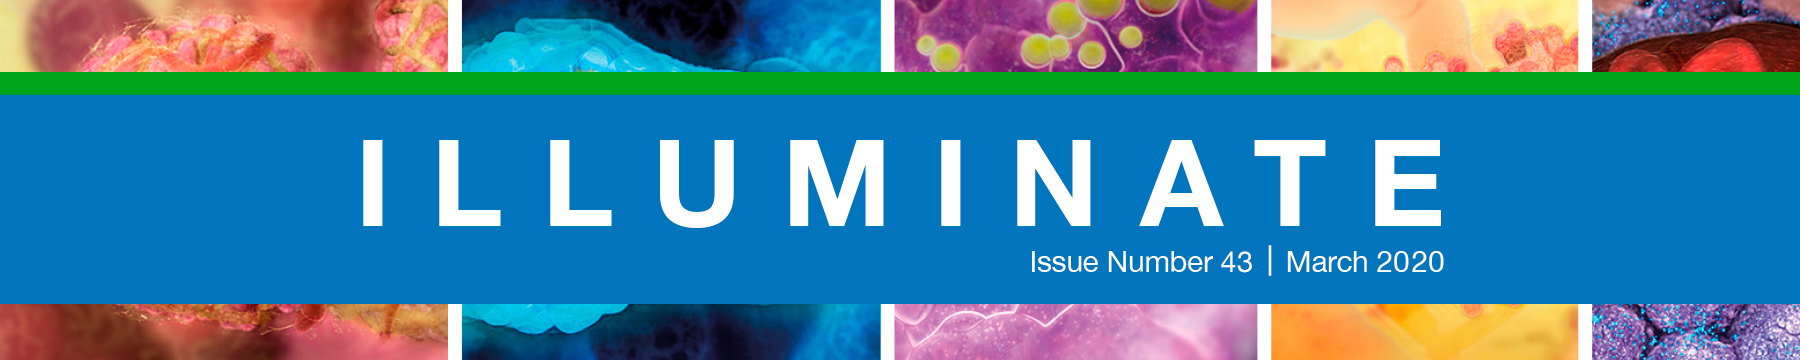 Illuminate newsletter index page, March 2020